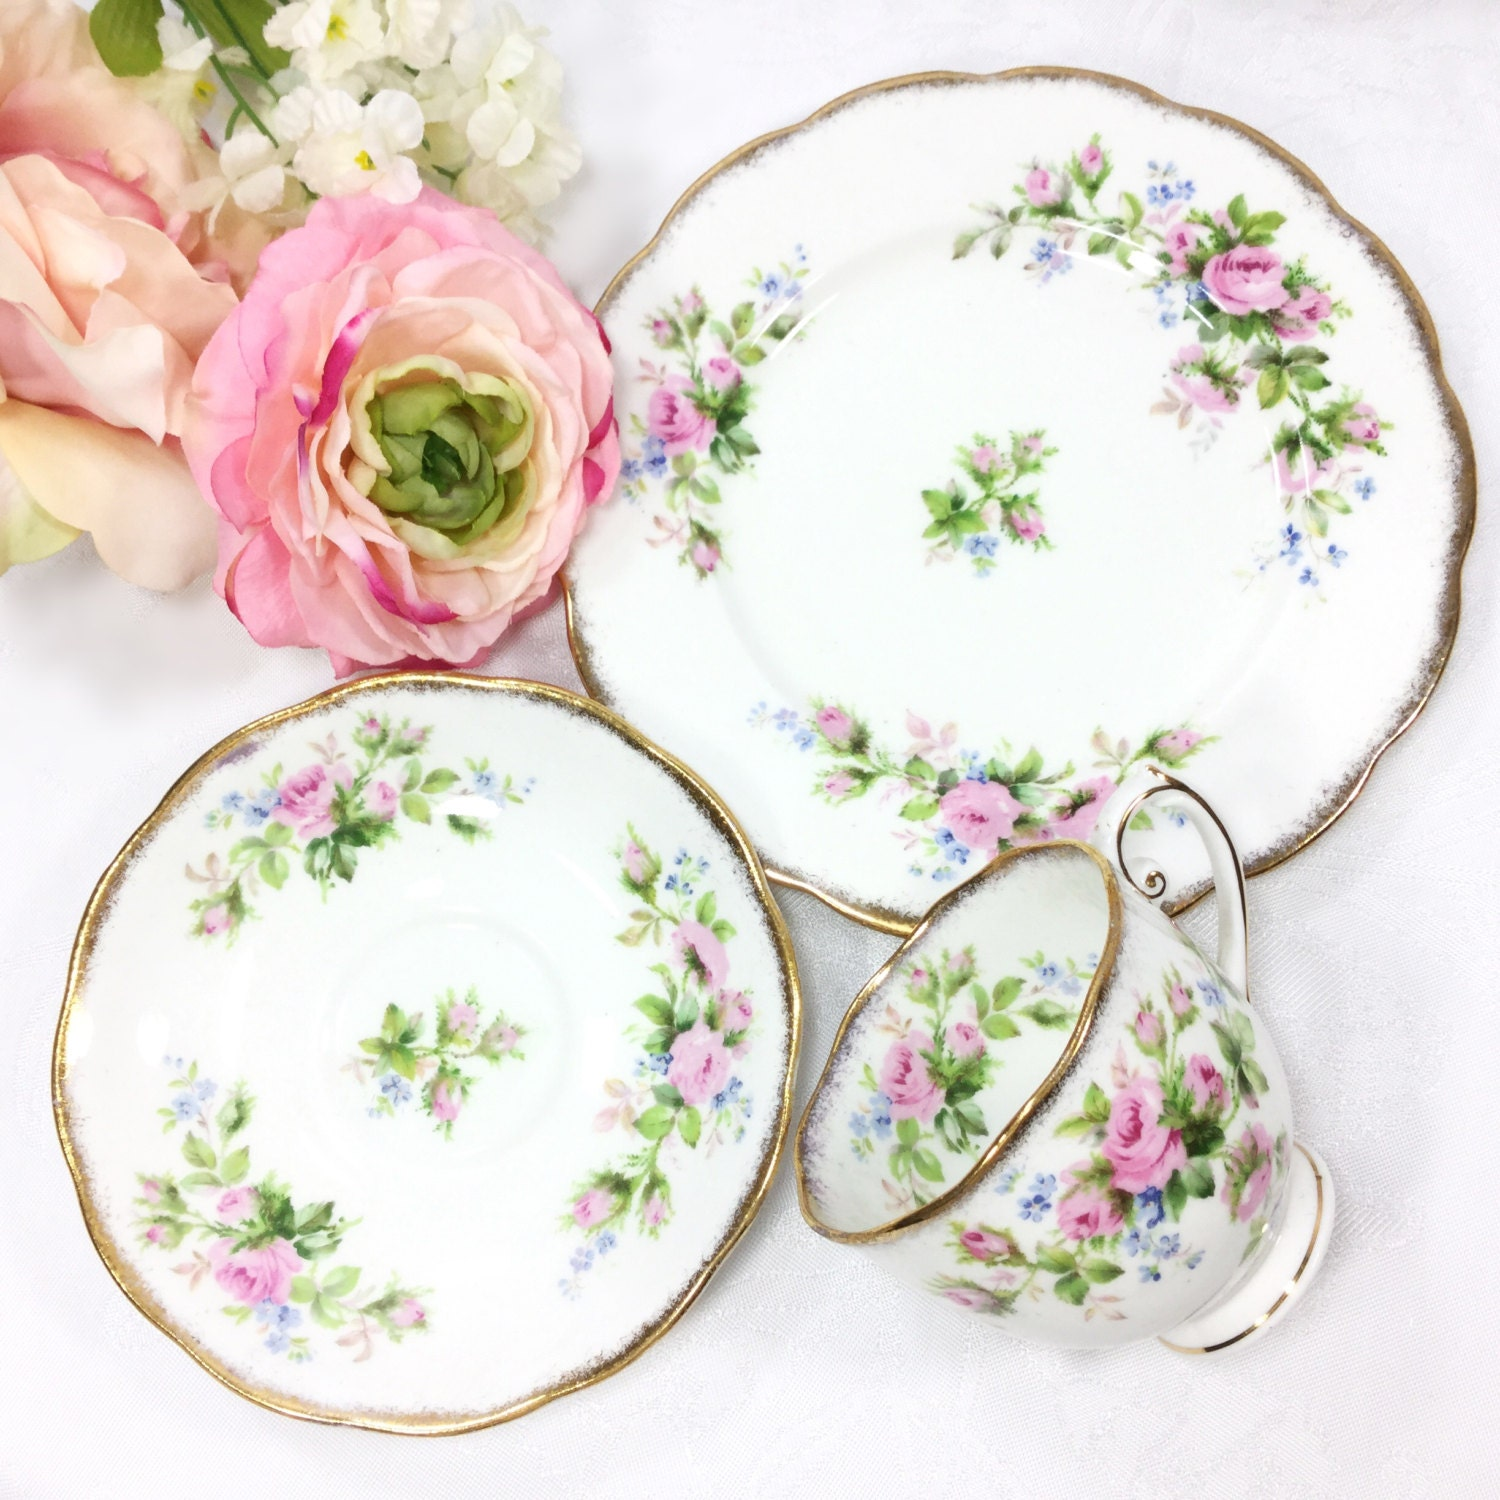 18 Piece Roslyn Moss Rose Bone China English Tea Set Moss Rose Tea Trio Moss Rose Teapot English Bone China Tea Cup Saucer Plate #A570  sc 1 st  LC Vintage Chic & 18 Piece Roslyn Moss Rose Bone China English Tea Set Moss Rose Tea ...